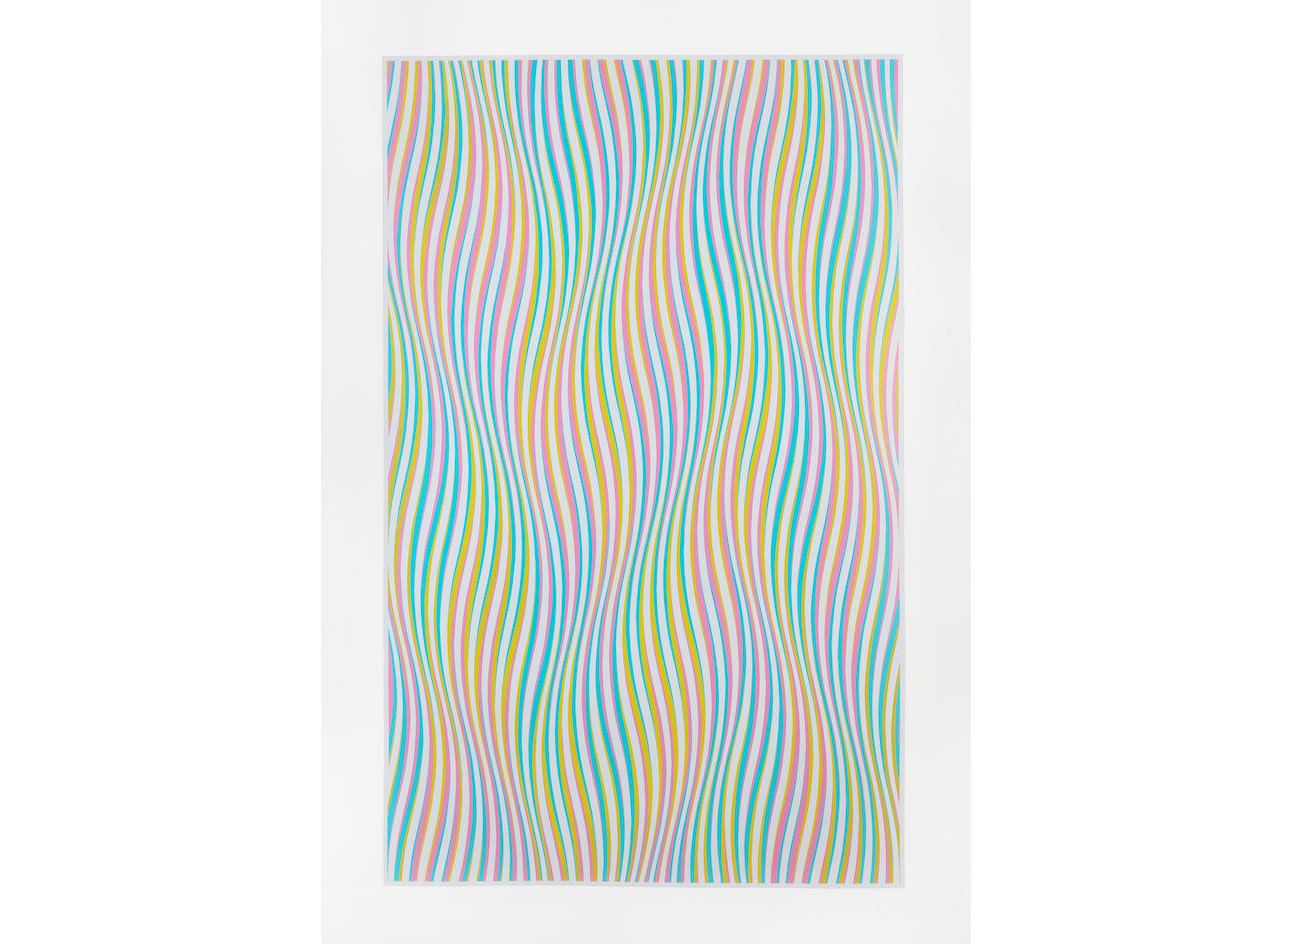 "<span class=""link fancybox-details-link""><a href=""/artists/72-bridget-riley/works/870/"">View Detail Page</a></span><div class=""artist""><strong>Bridget Riley</strong></div> 1931 <div class=""title""><em>Elapse</em>, 1982</div> <div class=""signed_and_dated"">signed, titled and dated in pencil<br /> from edition of 250</div> <div class=""medium"">colour screenprint on wove paper</div> <div class=""dimensions"">102.1 x 63.9cm</div> <div class=""edition_details"">from edition of 250</div><div class=""copyright_line"">Copyright The Artist</div>"